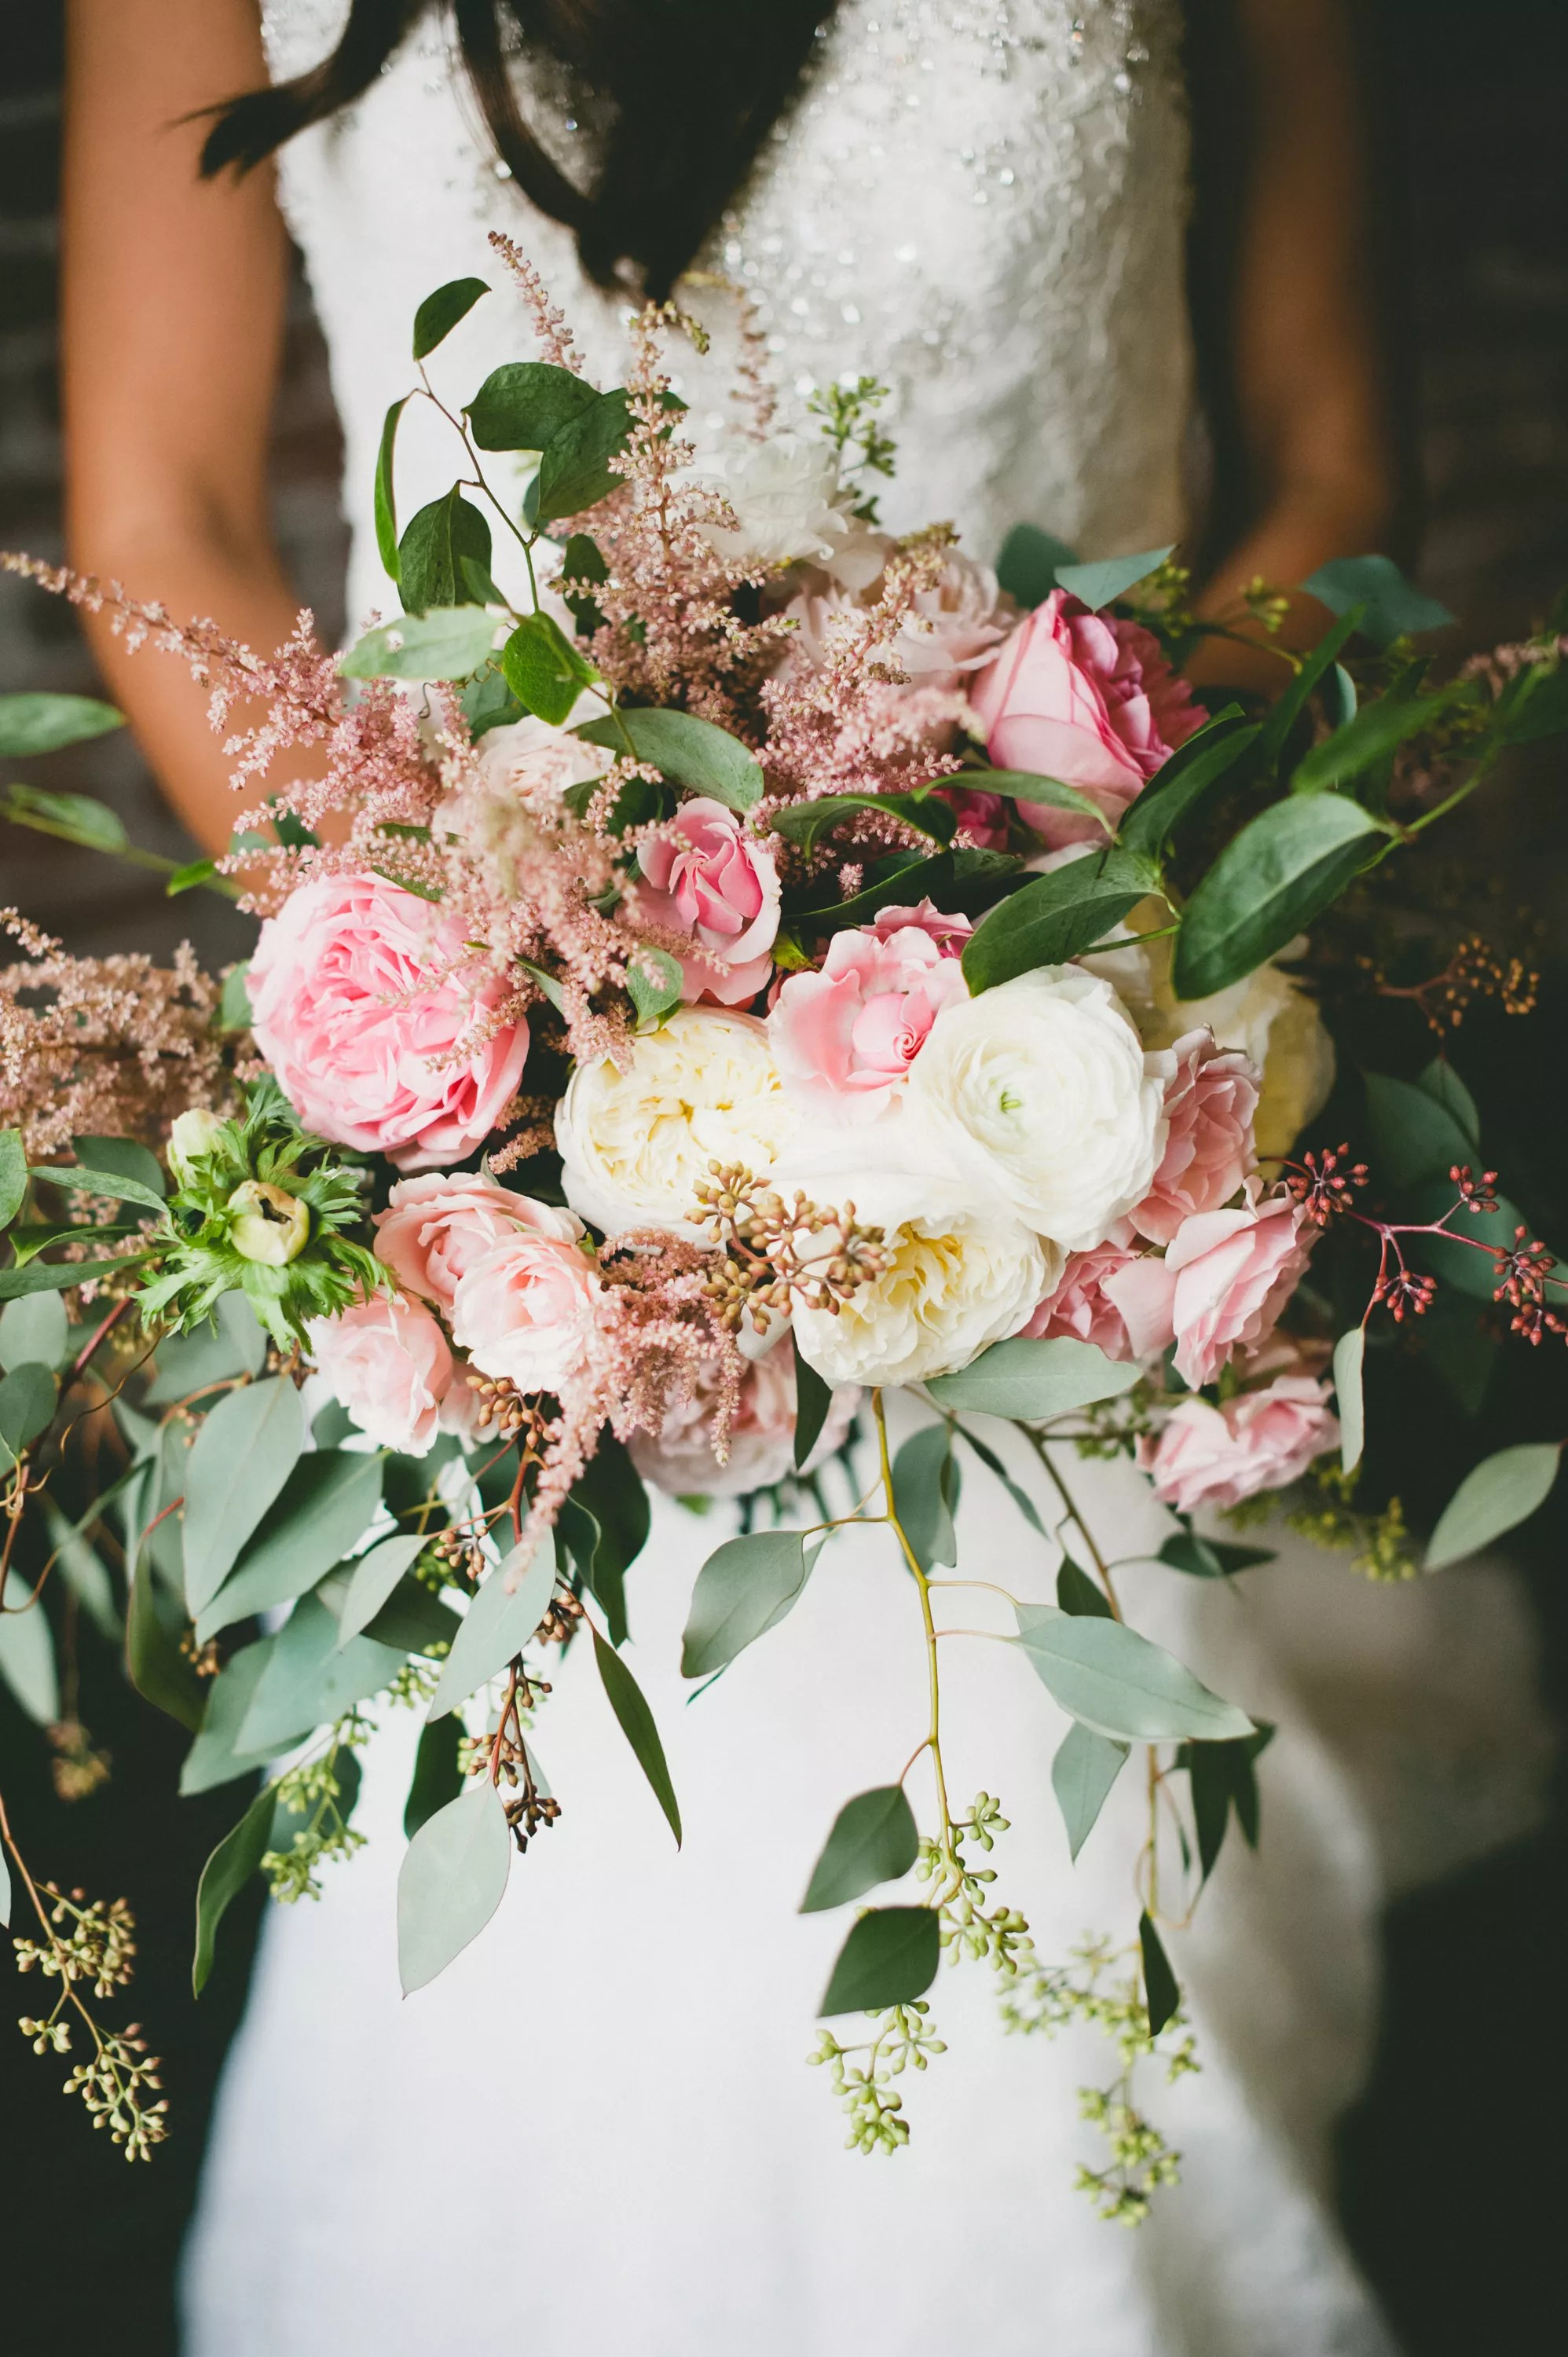 Pink and White Romantic Bouquet